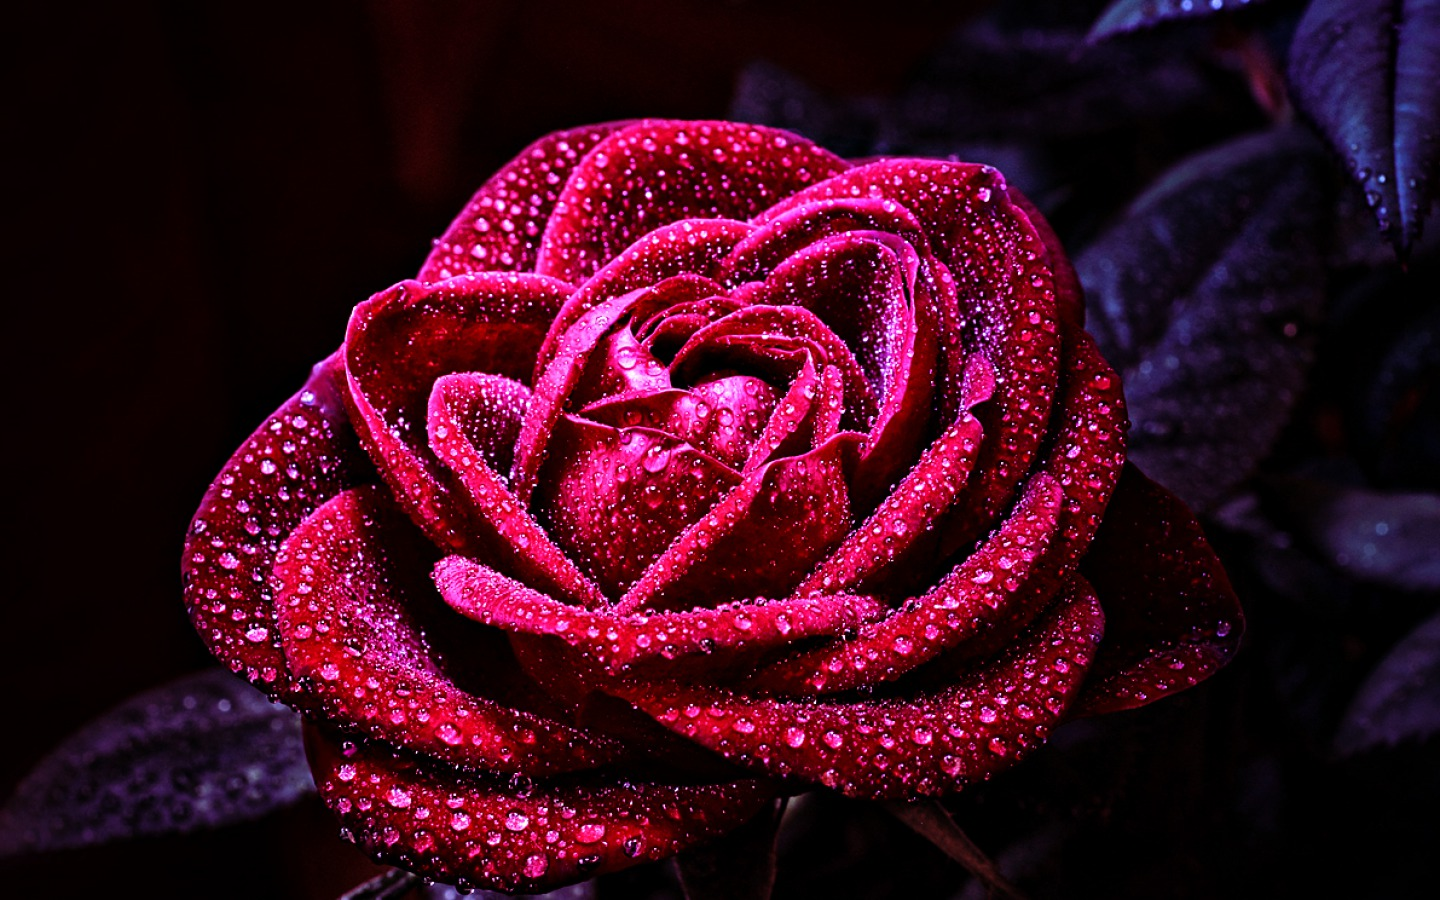 crimson rose with dewdrops